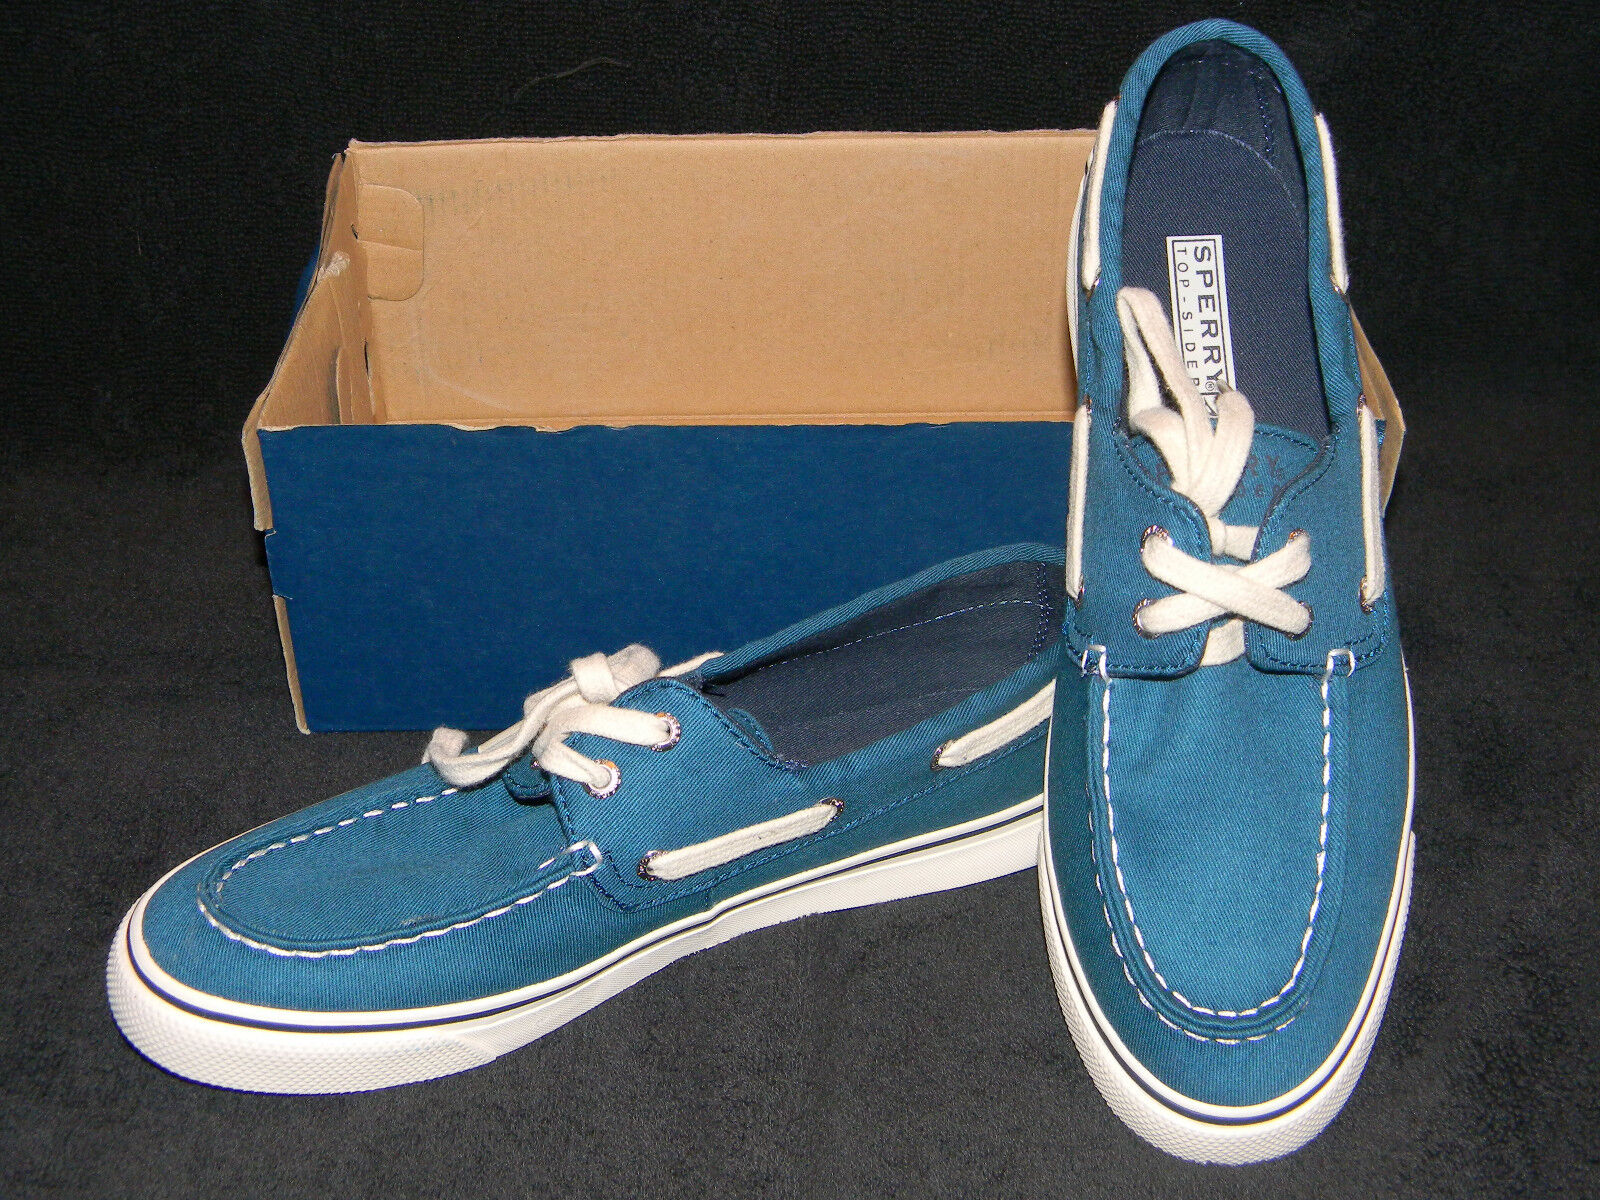 New Sperry Women's Teal Biscayne Boat Shoes-Size 11 Retail $60.00